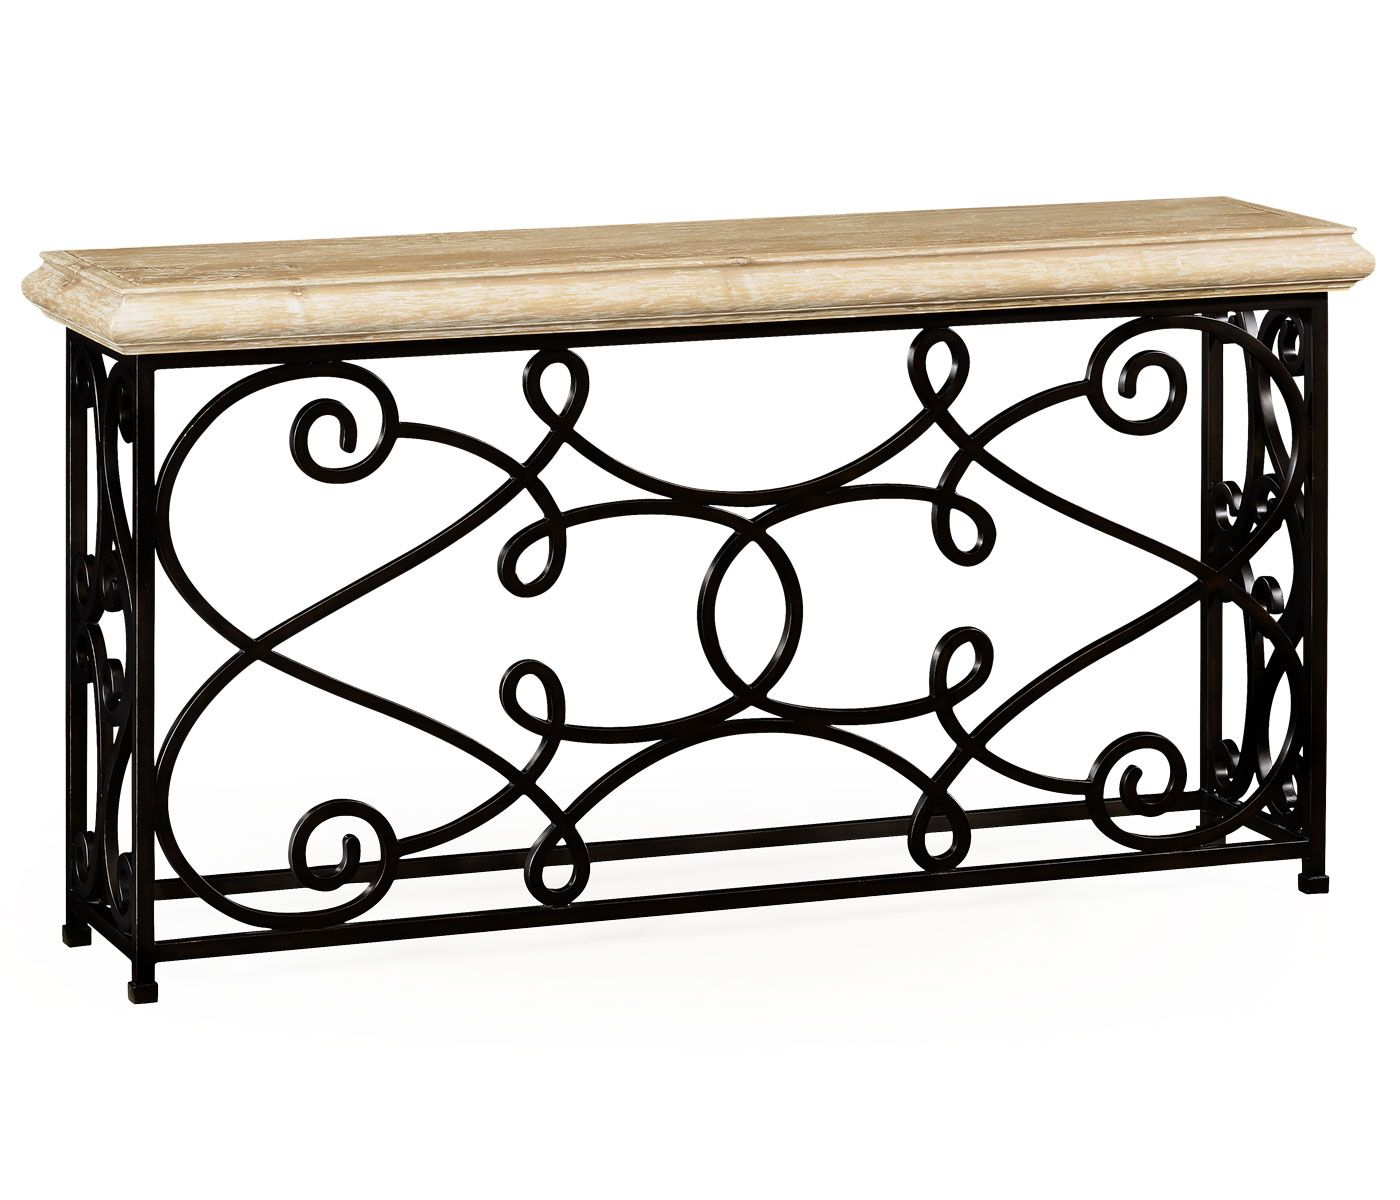 MICRO TREND // 12 Wrought Iron Products That Add Old World Style To Your  Home. Console Table: This Rococo Table Definitely Will Give Any Home The  Feeling Of ...